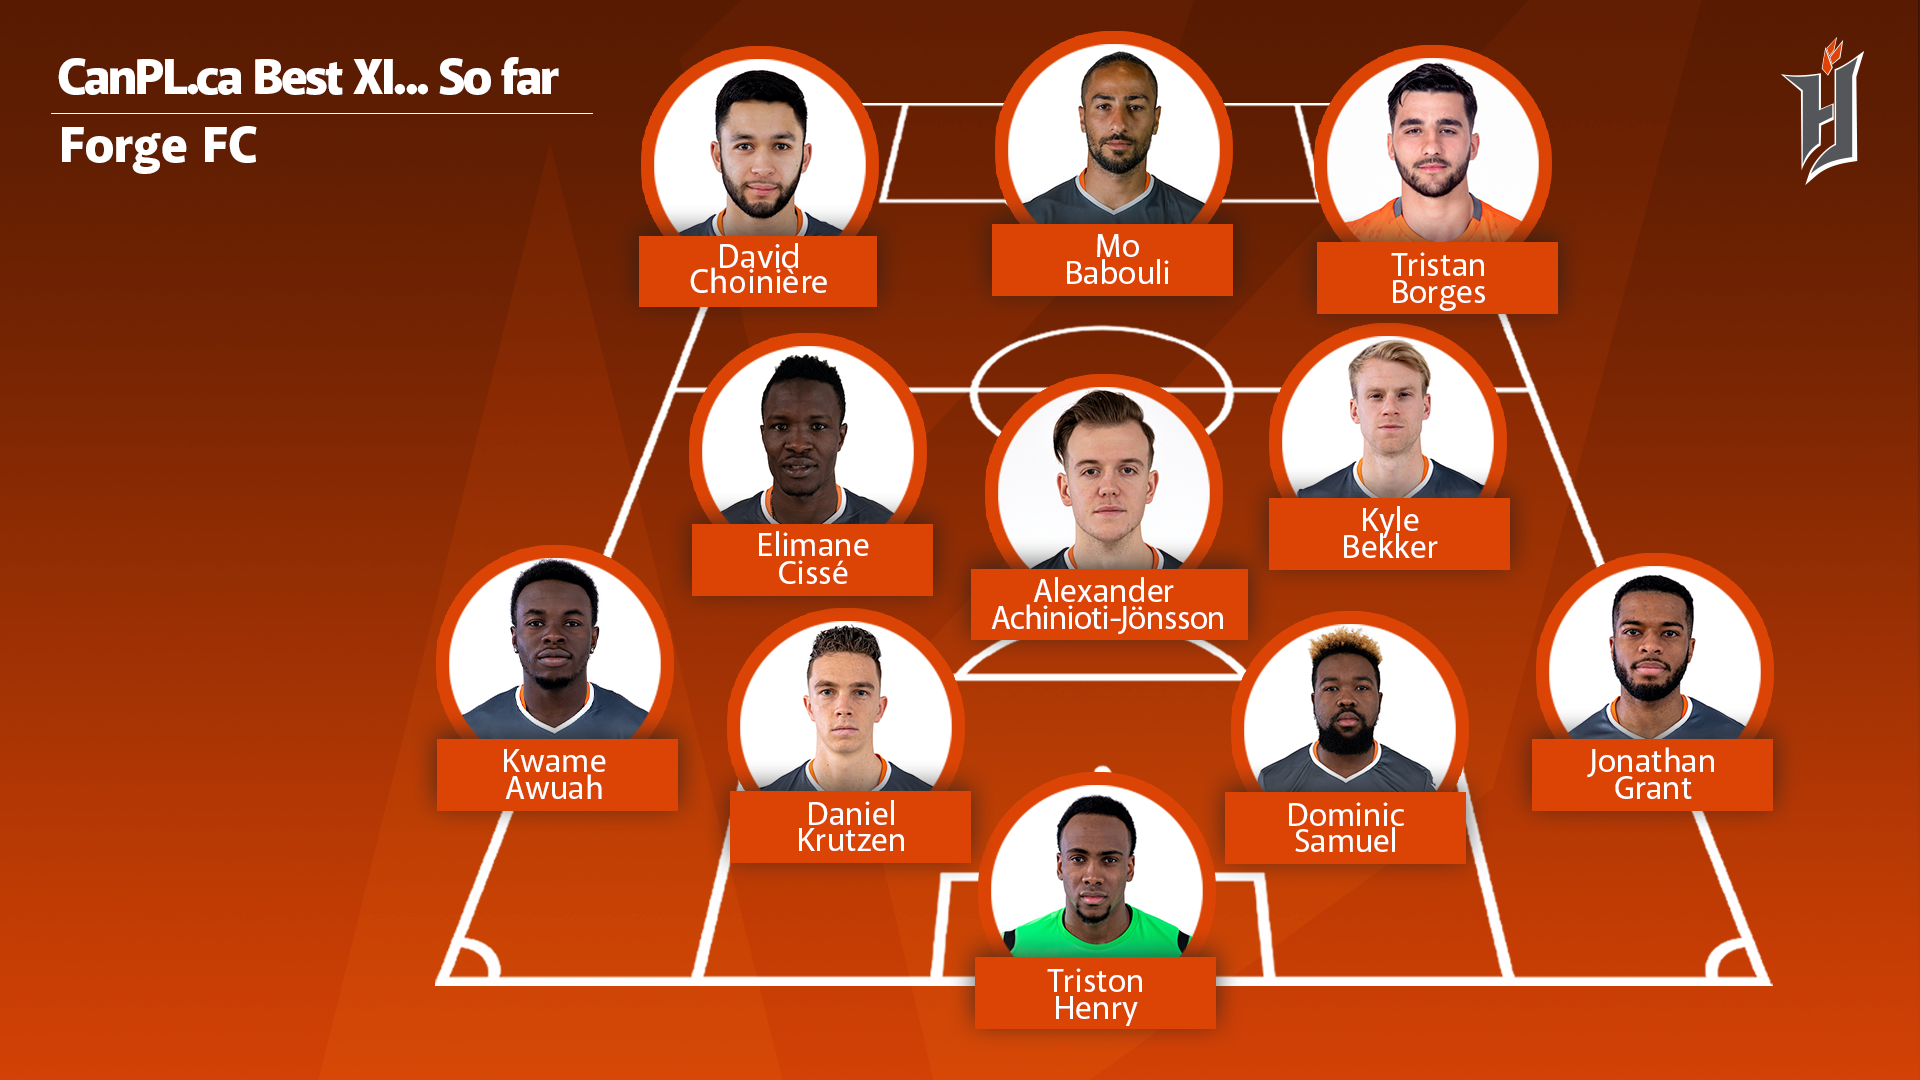 CanPL.ca's predicted starting XI for Forge FC.